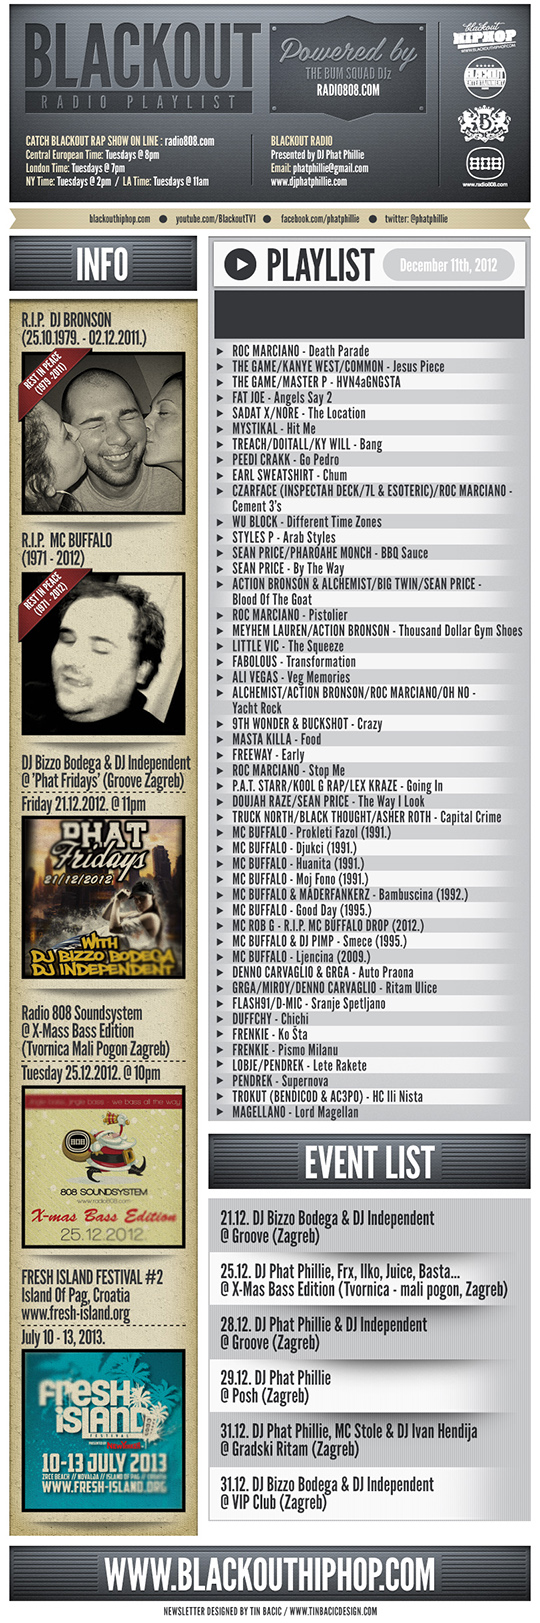 PLAYLIST 11 12 Blackout Radio Playlist & DL Links (Dec 11th, 2012)